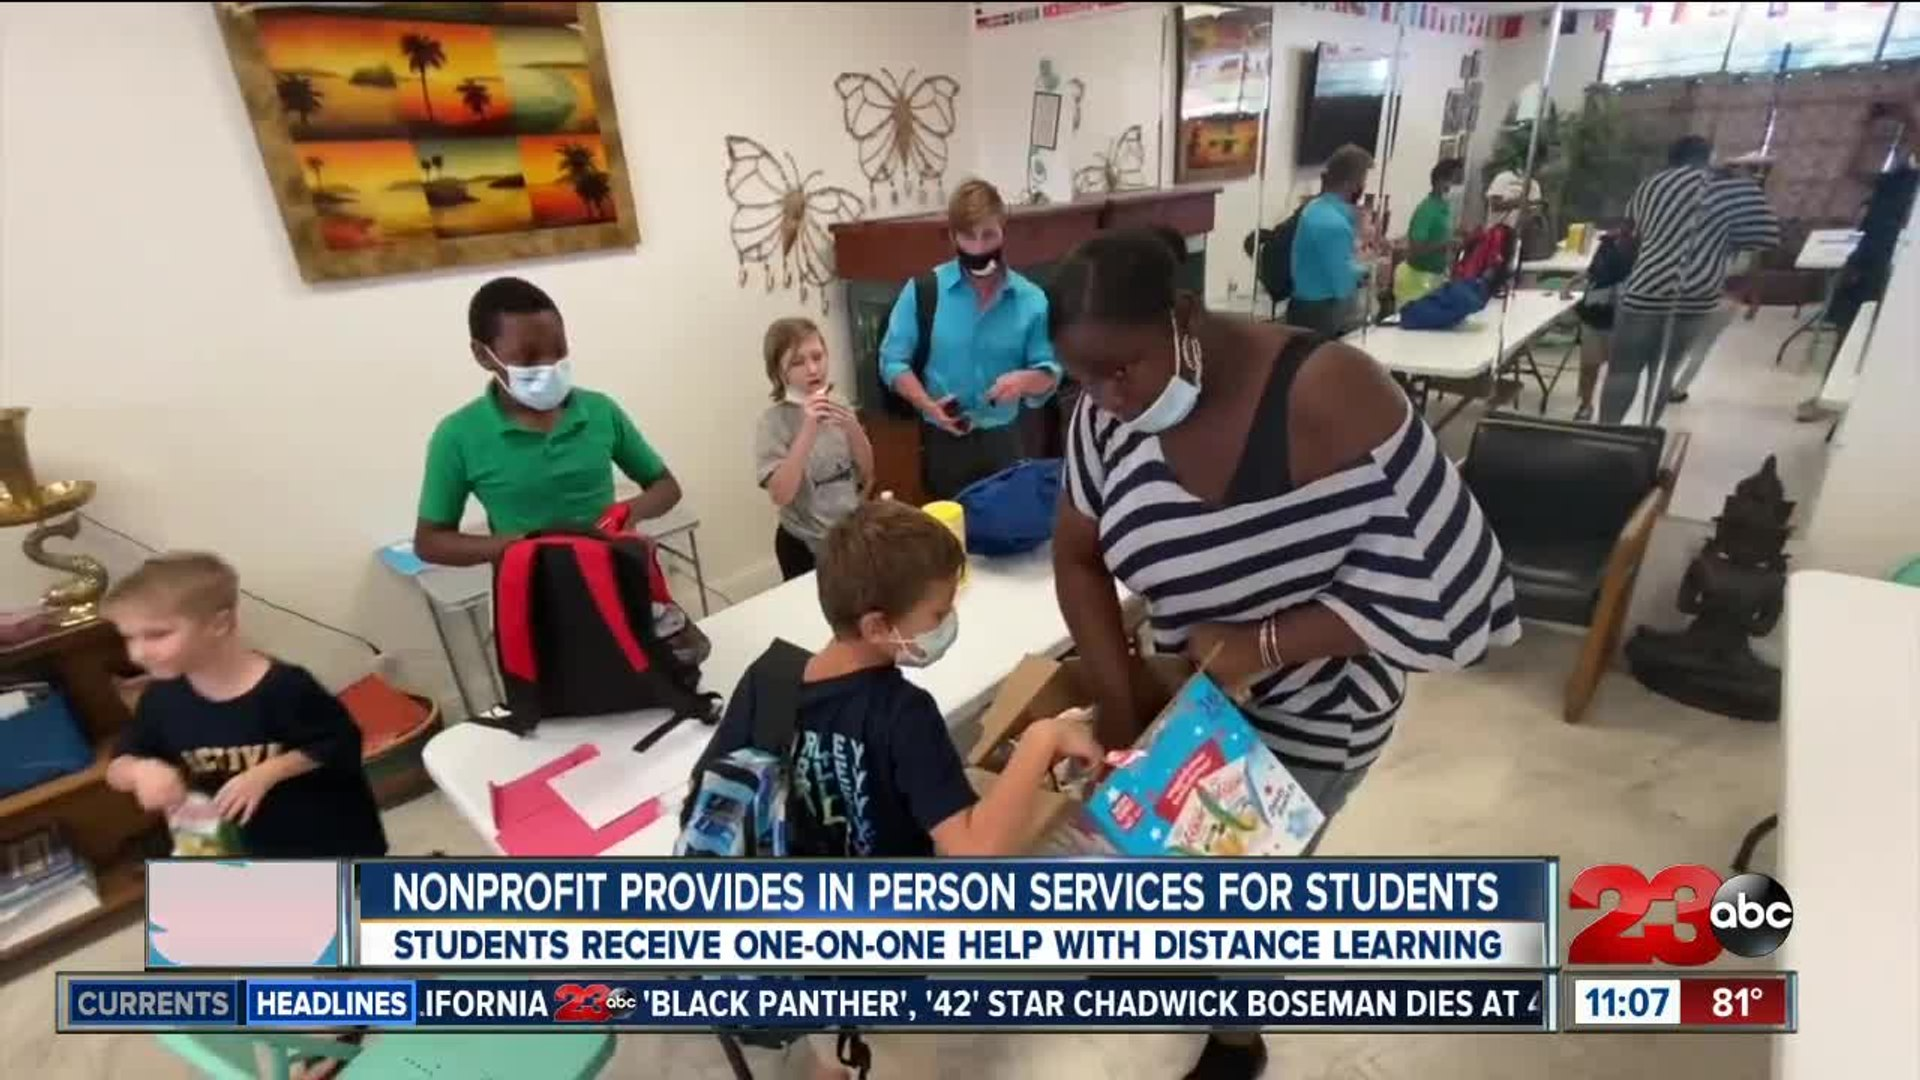 Non-profit Cultural Elegance Studio helps students with distance learning